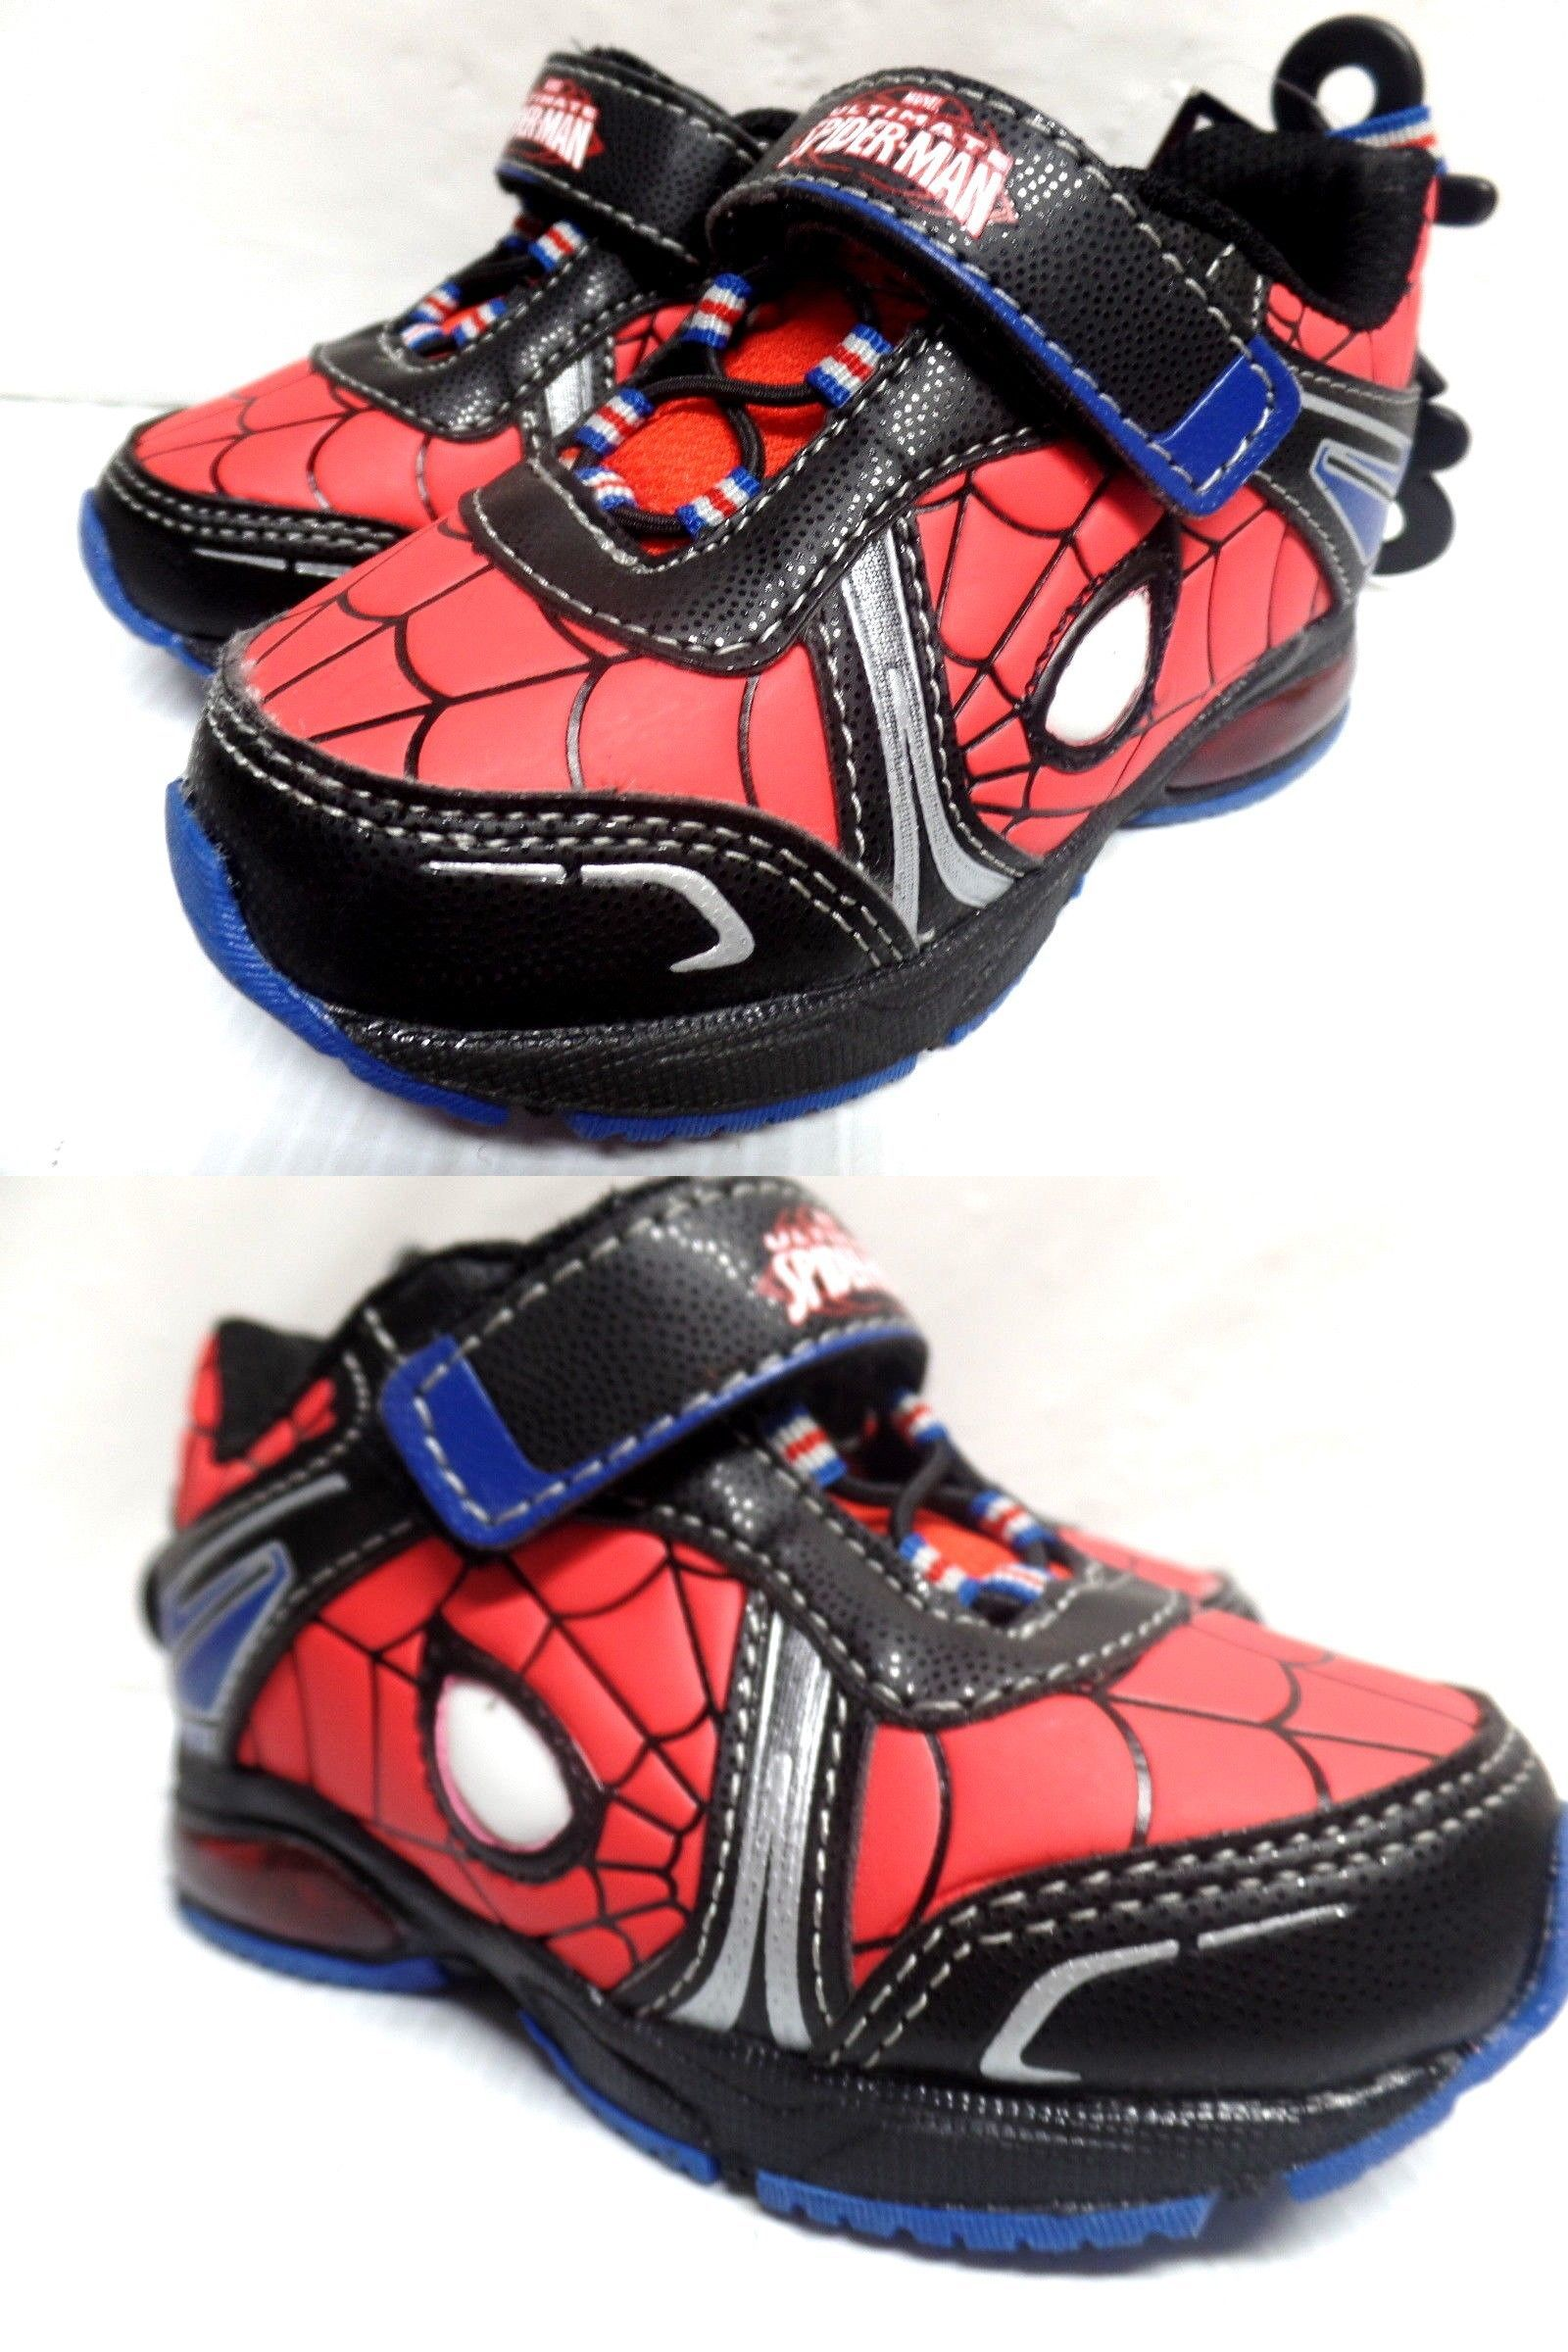 f37e27d7f66 Baby Shoes 147285: Spiderman Avengers Marvel Boys Youth Toddler ...